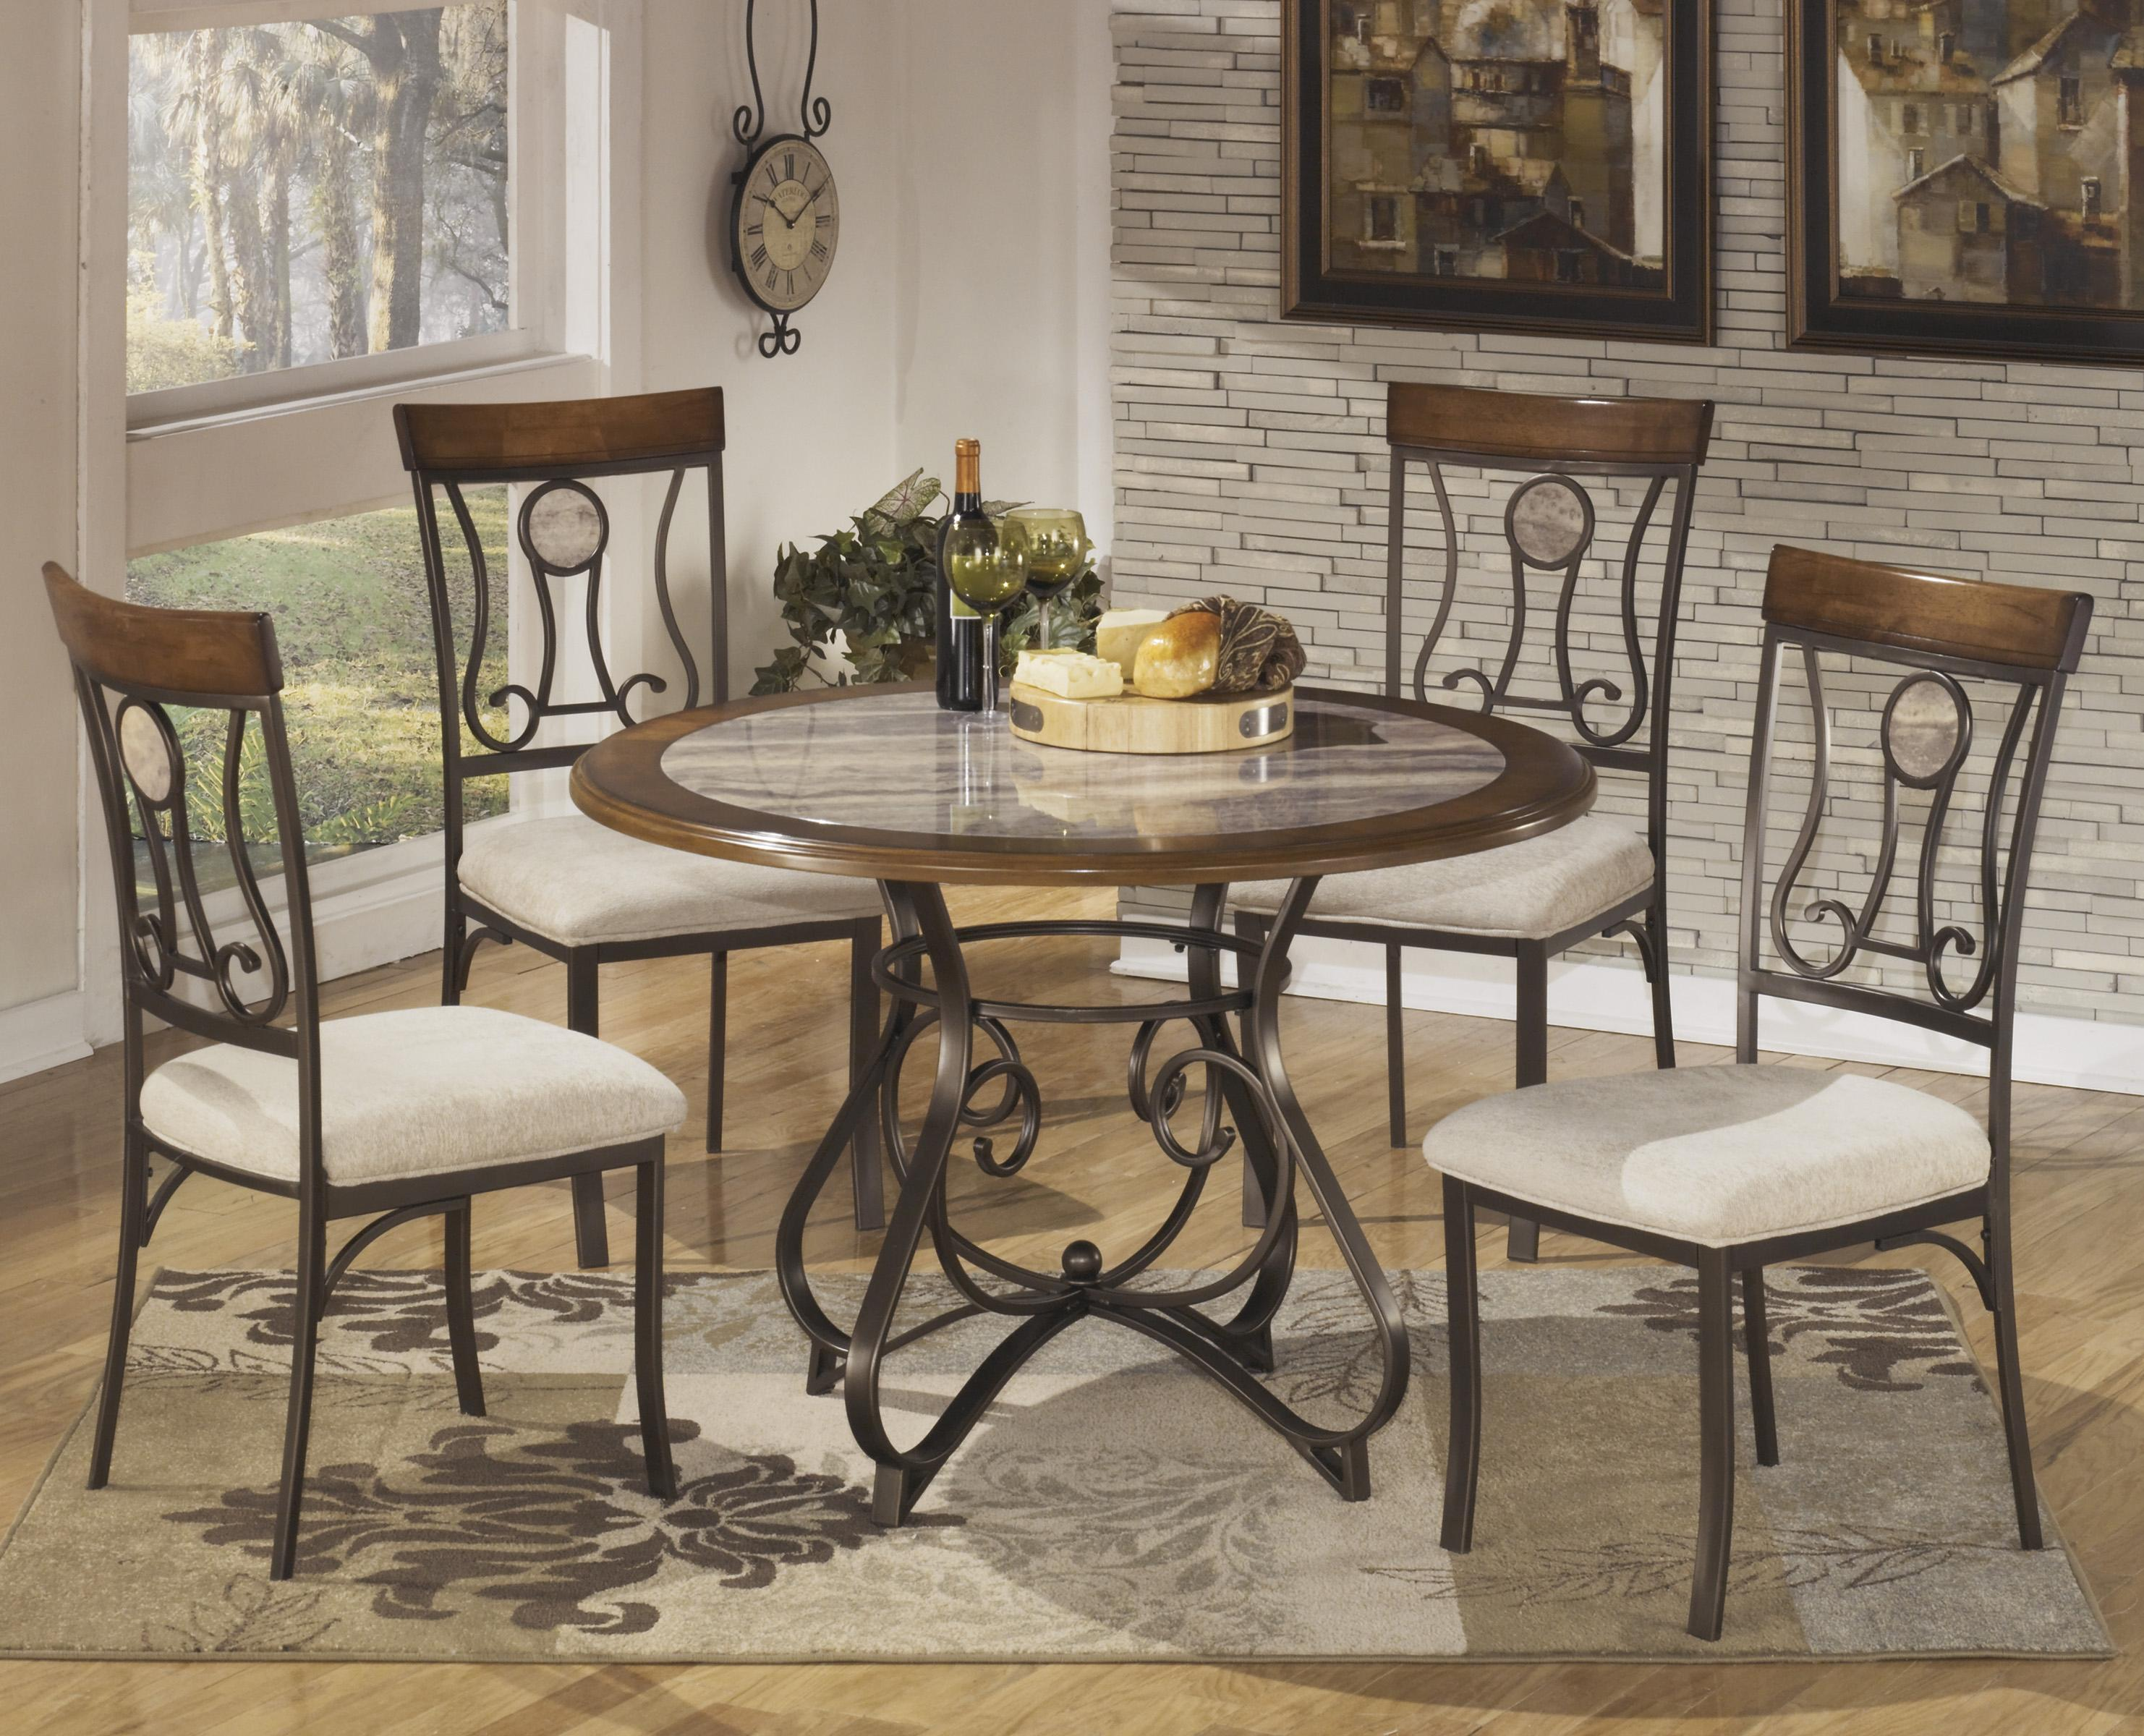 round kitchen table sets Signature Design by Ashley Hopstand 5 Piece Round Dining Table Set Item Number